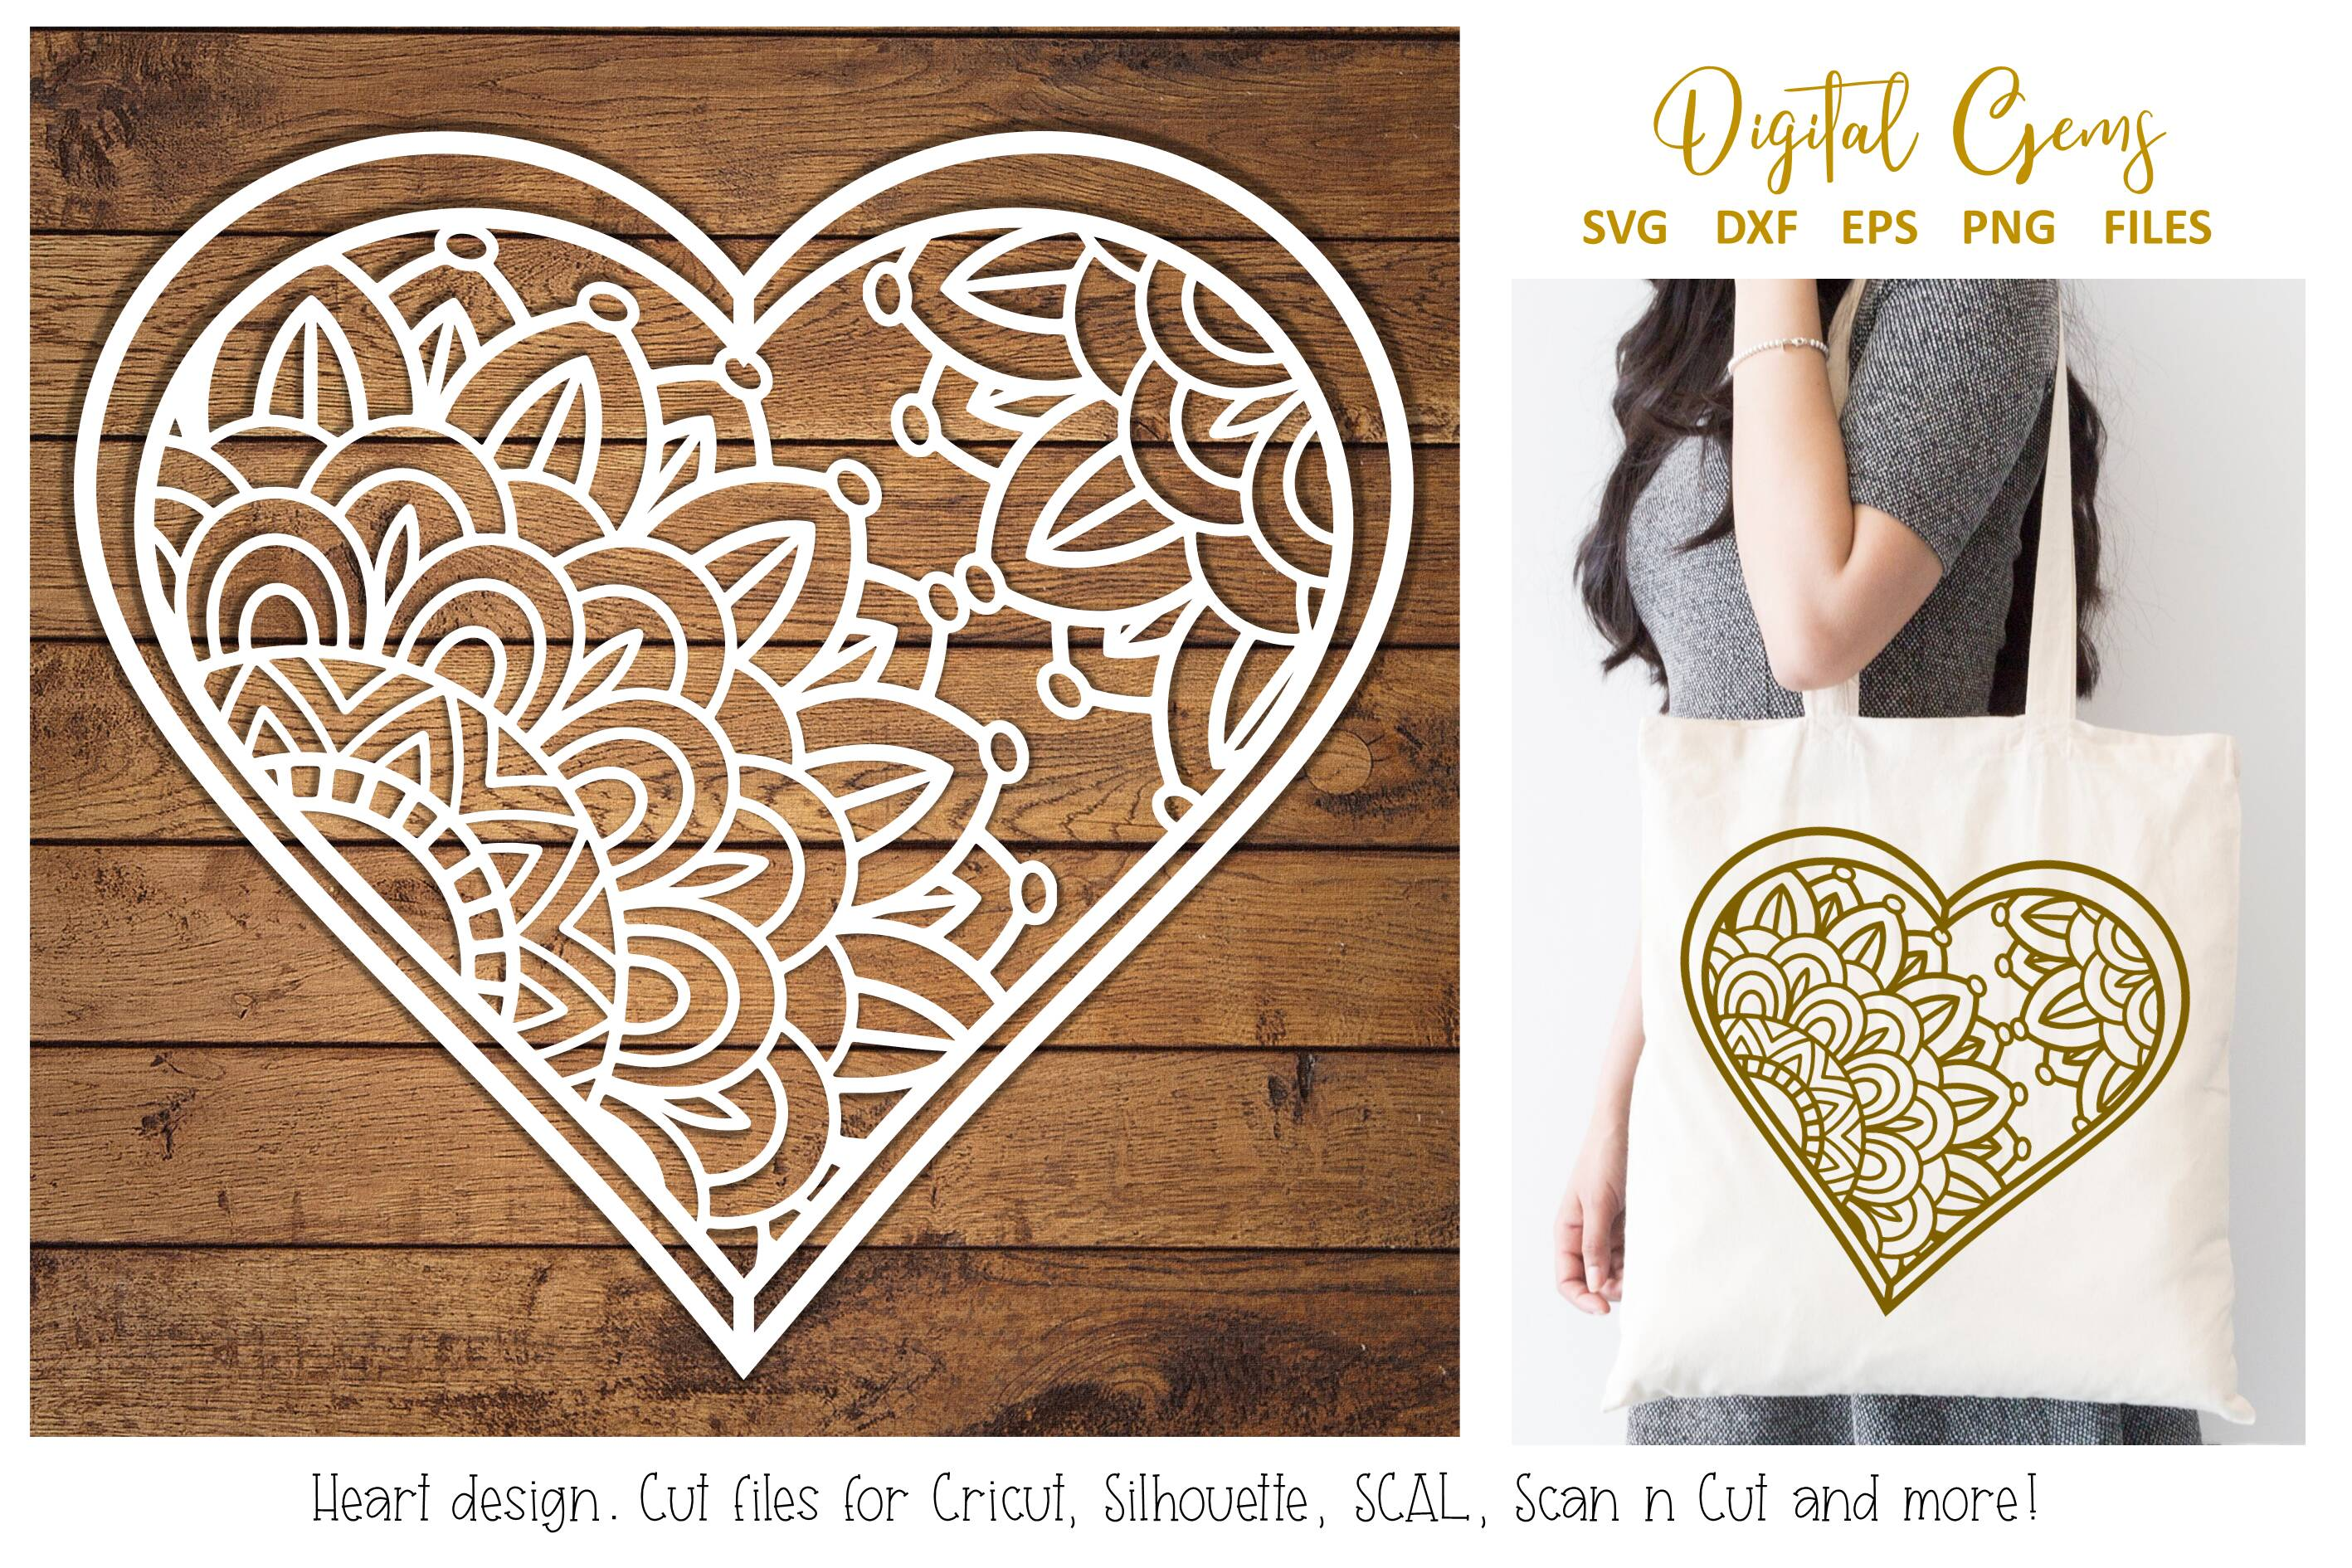 Download Free Heart Paper Cut Design Graphic By Digital Gems Creative Fabrica for Cricut Explore, Silhouette and other cutting machines.